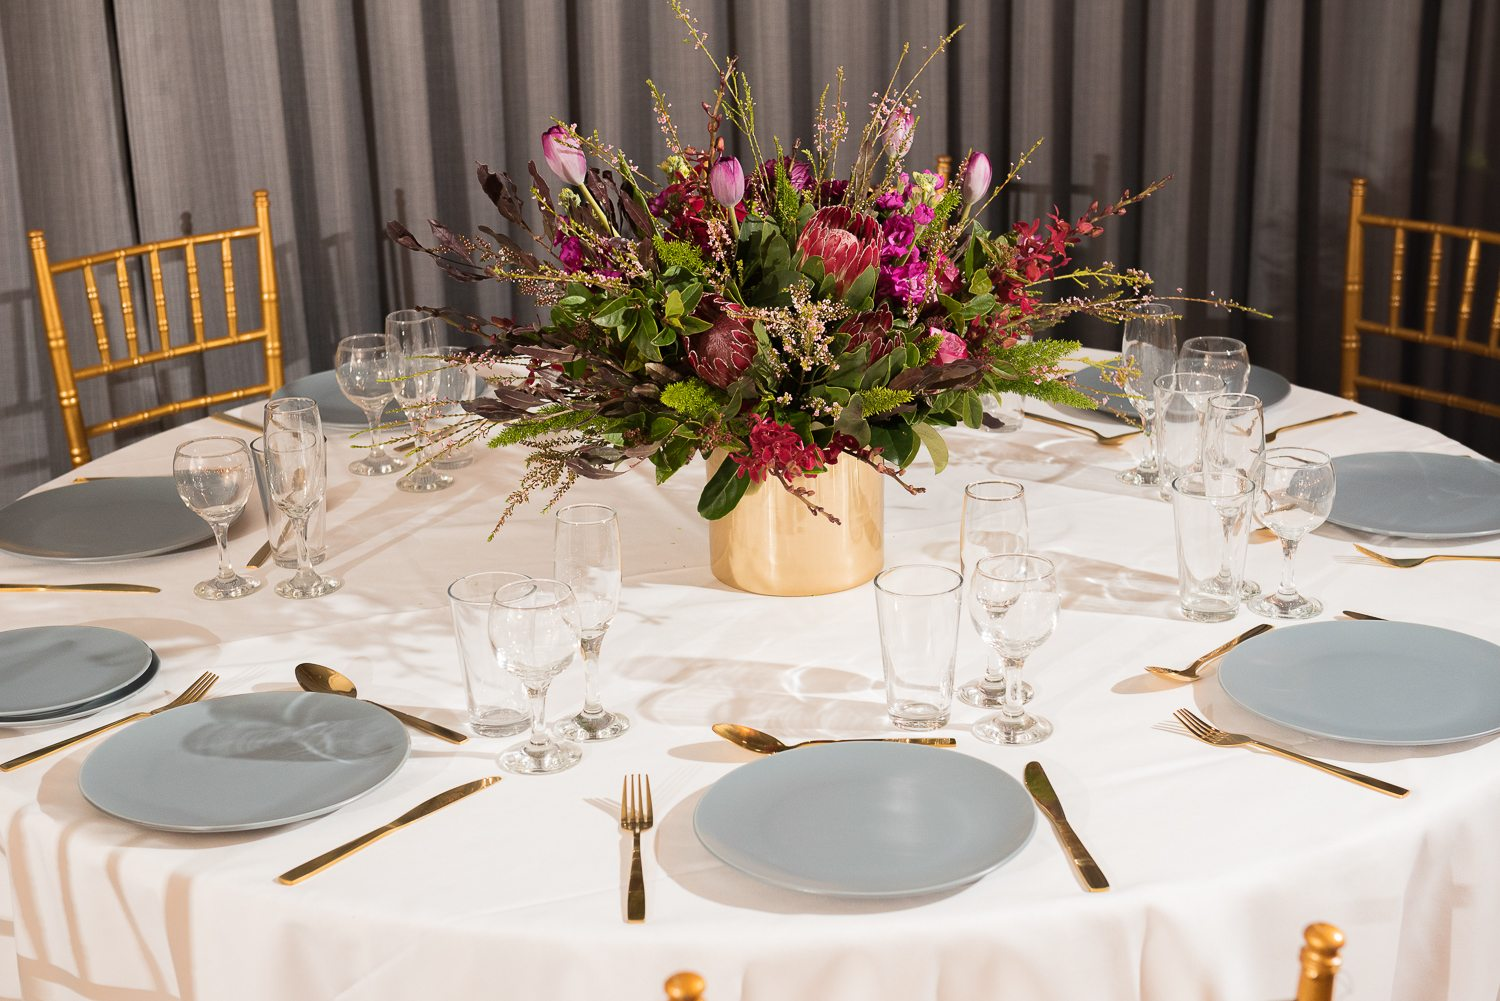 table setting with gold vase, bright flowers, grey plates and gold cutlery